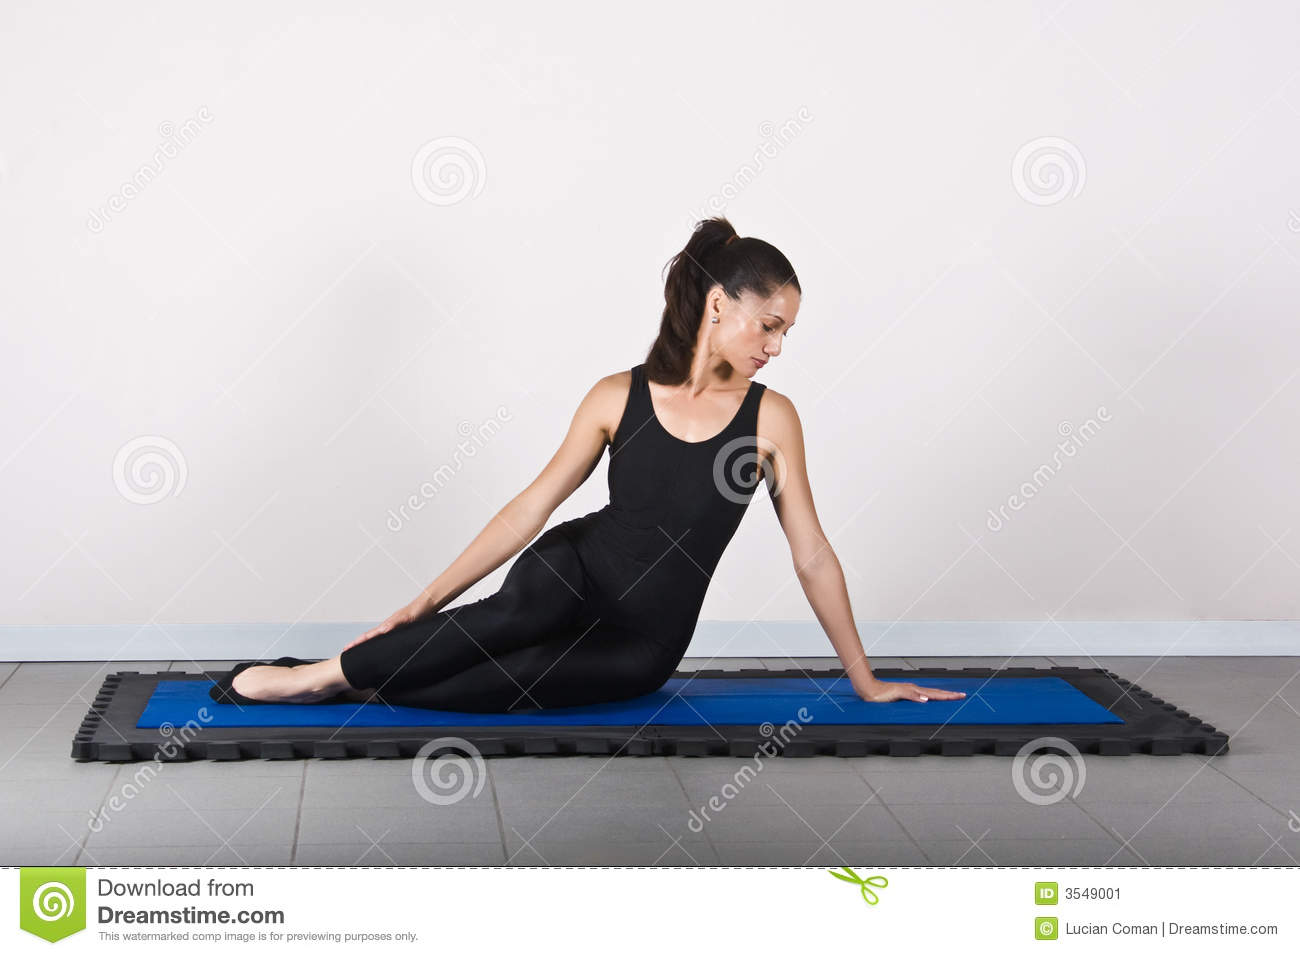 Gymnastikpilates